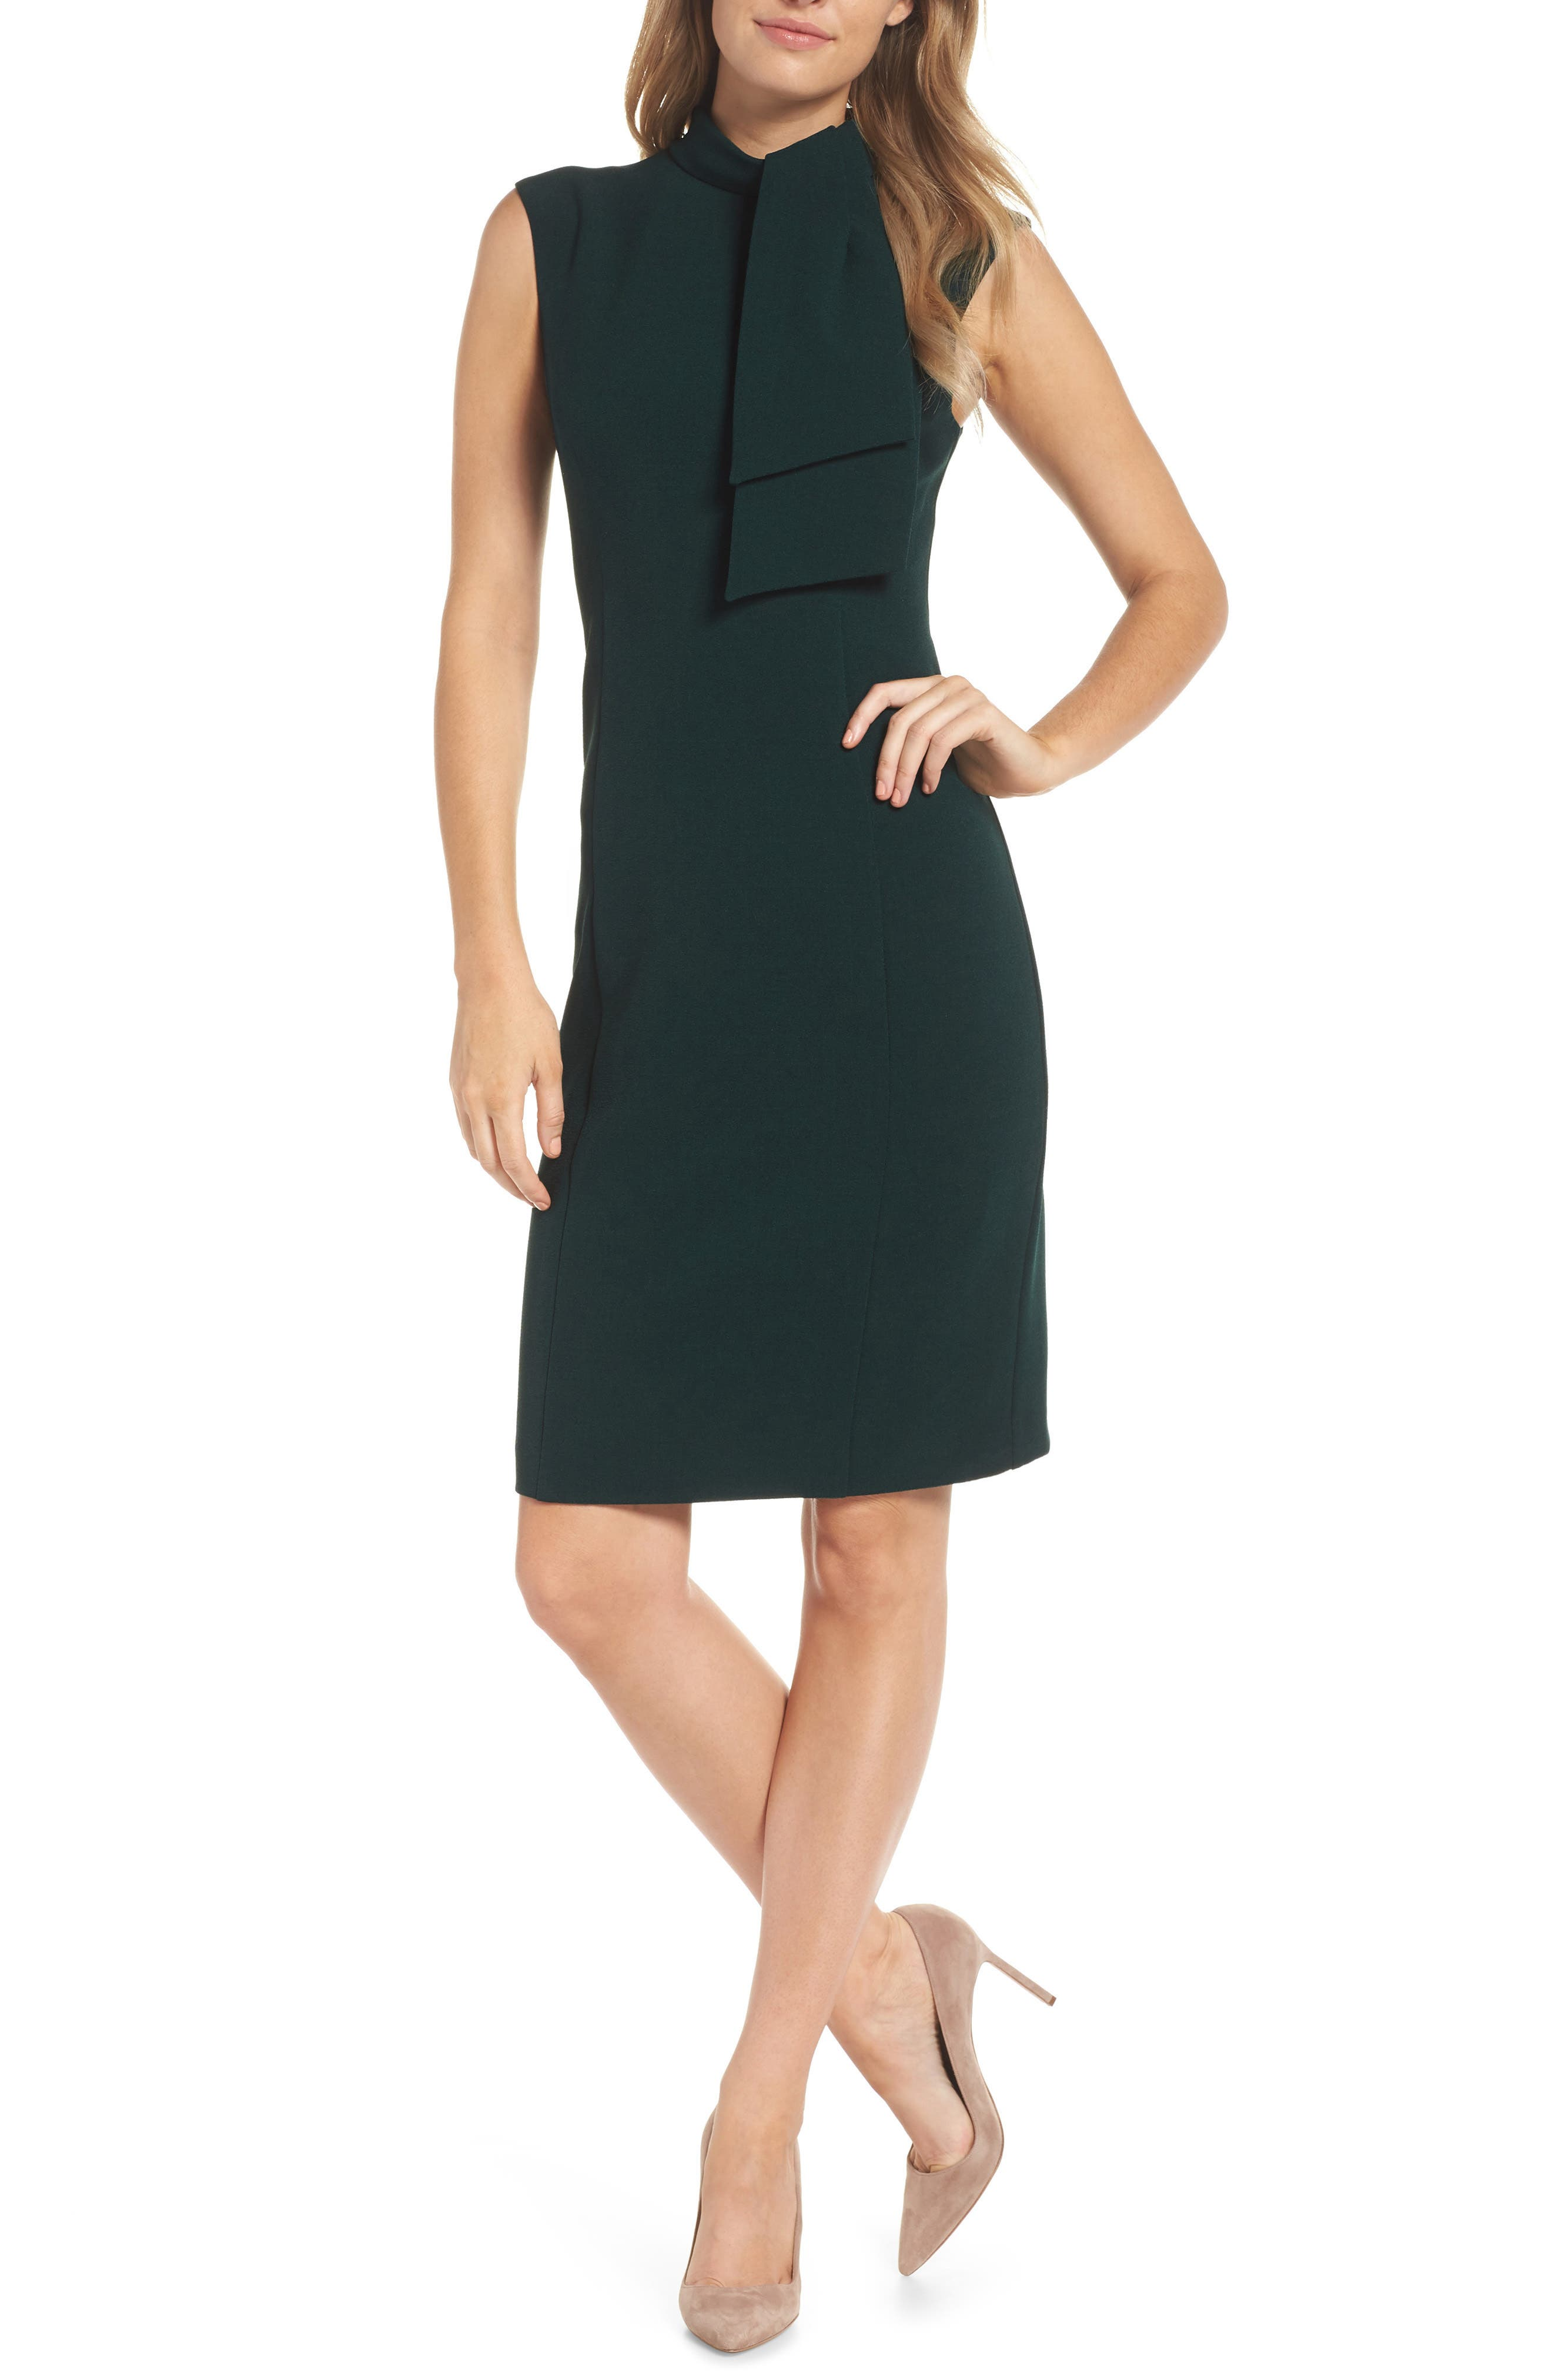 HARPER ROSE Tie Neck Sheath Dress, Main, color, 302